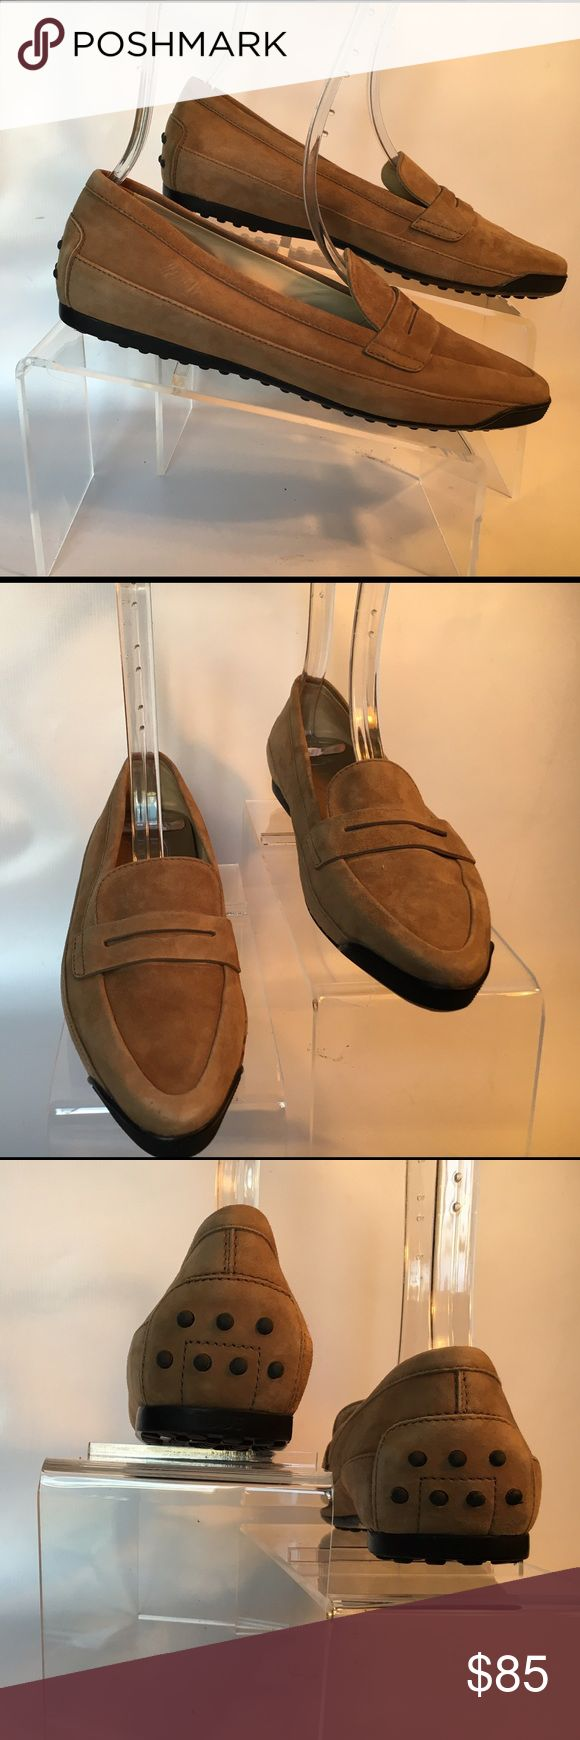 Tod's suede driving shoes Tod's suede driving shoes. Excellent condition Tod's…